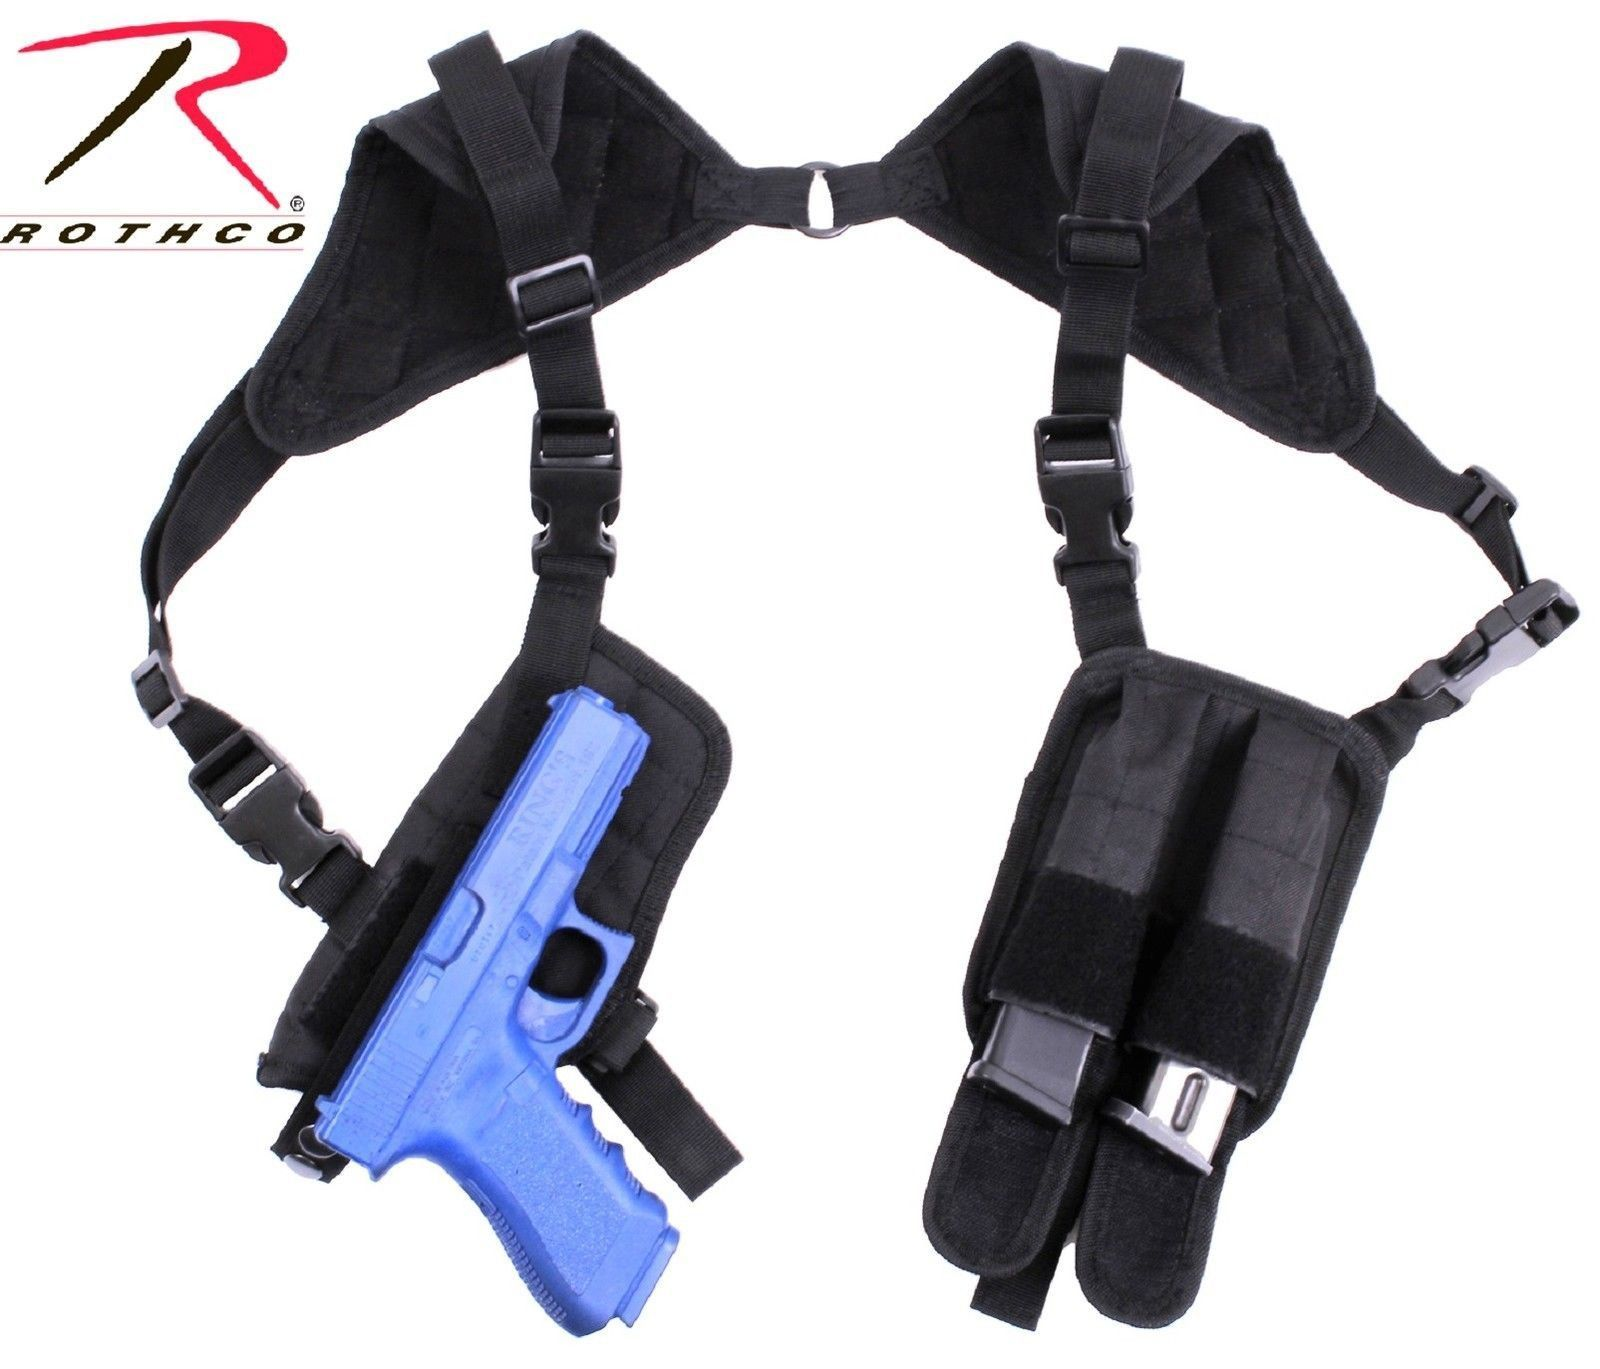 Ambidextrous Concealed Carry Shoulder Holster